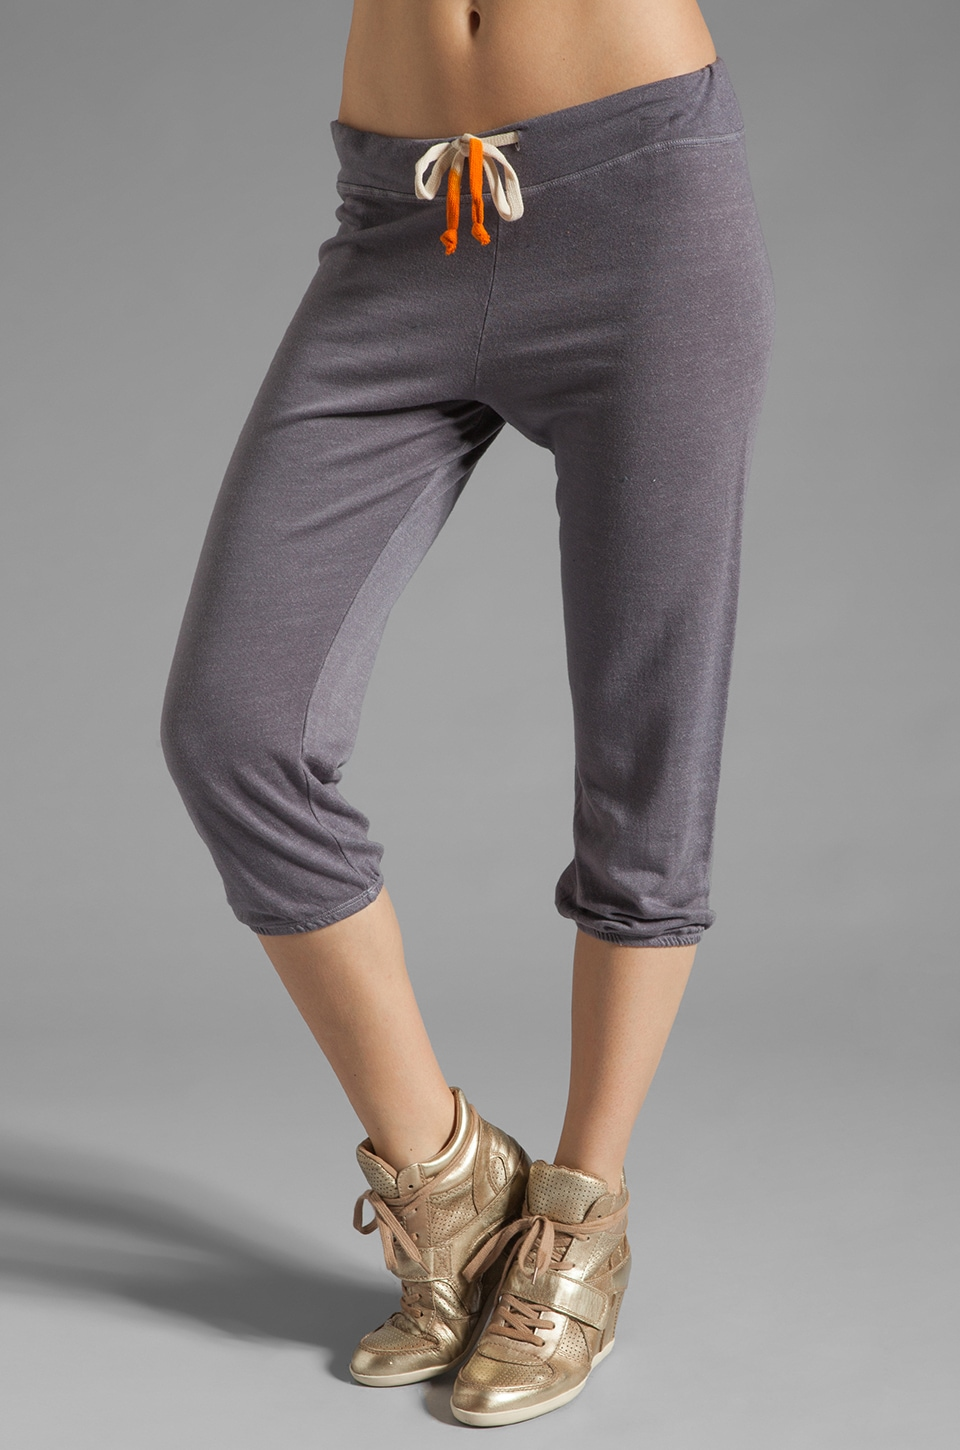 SUNDRY Light Terry Capri Pant in Graphite